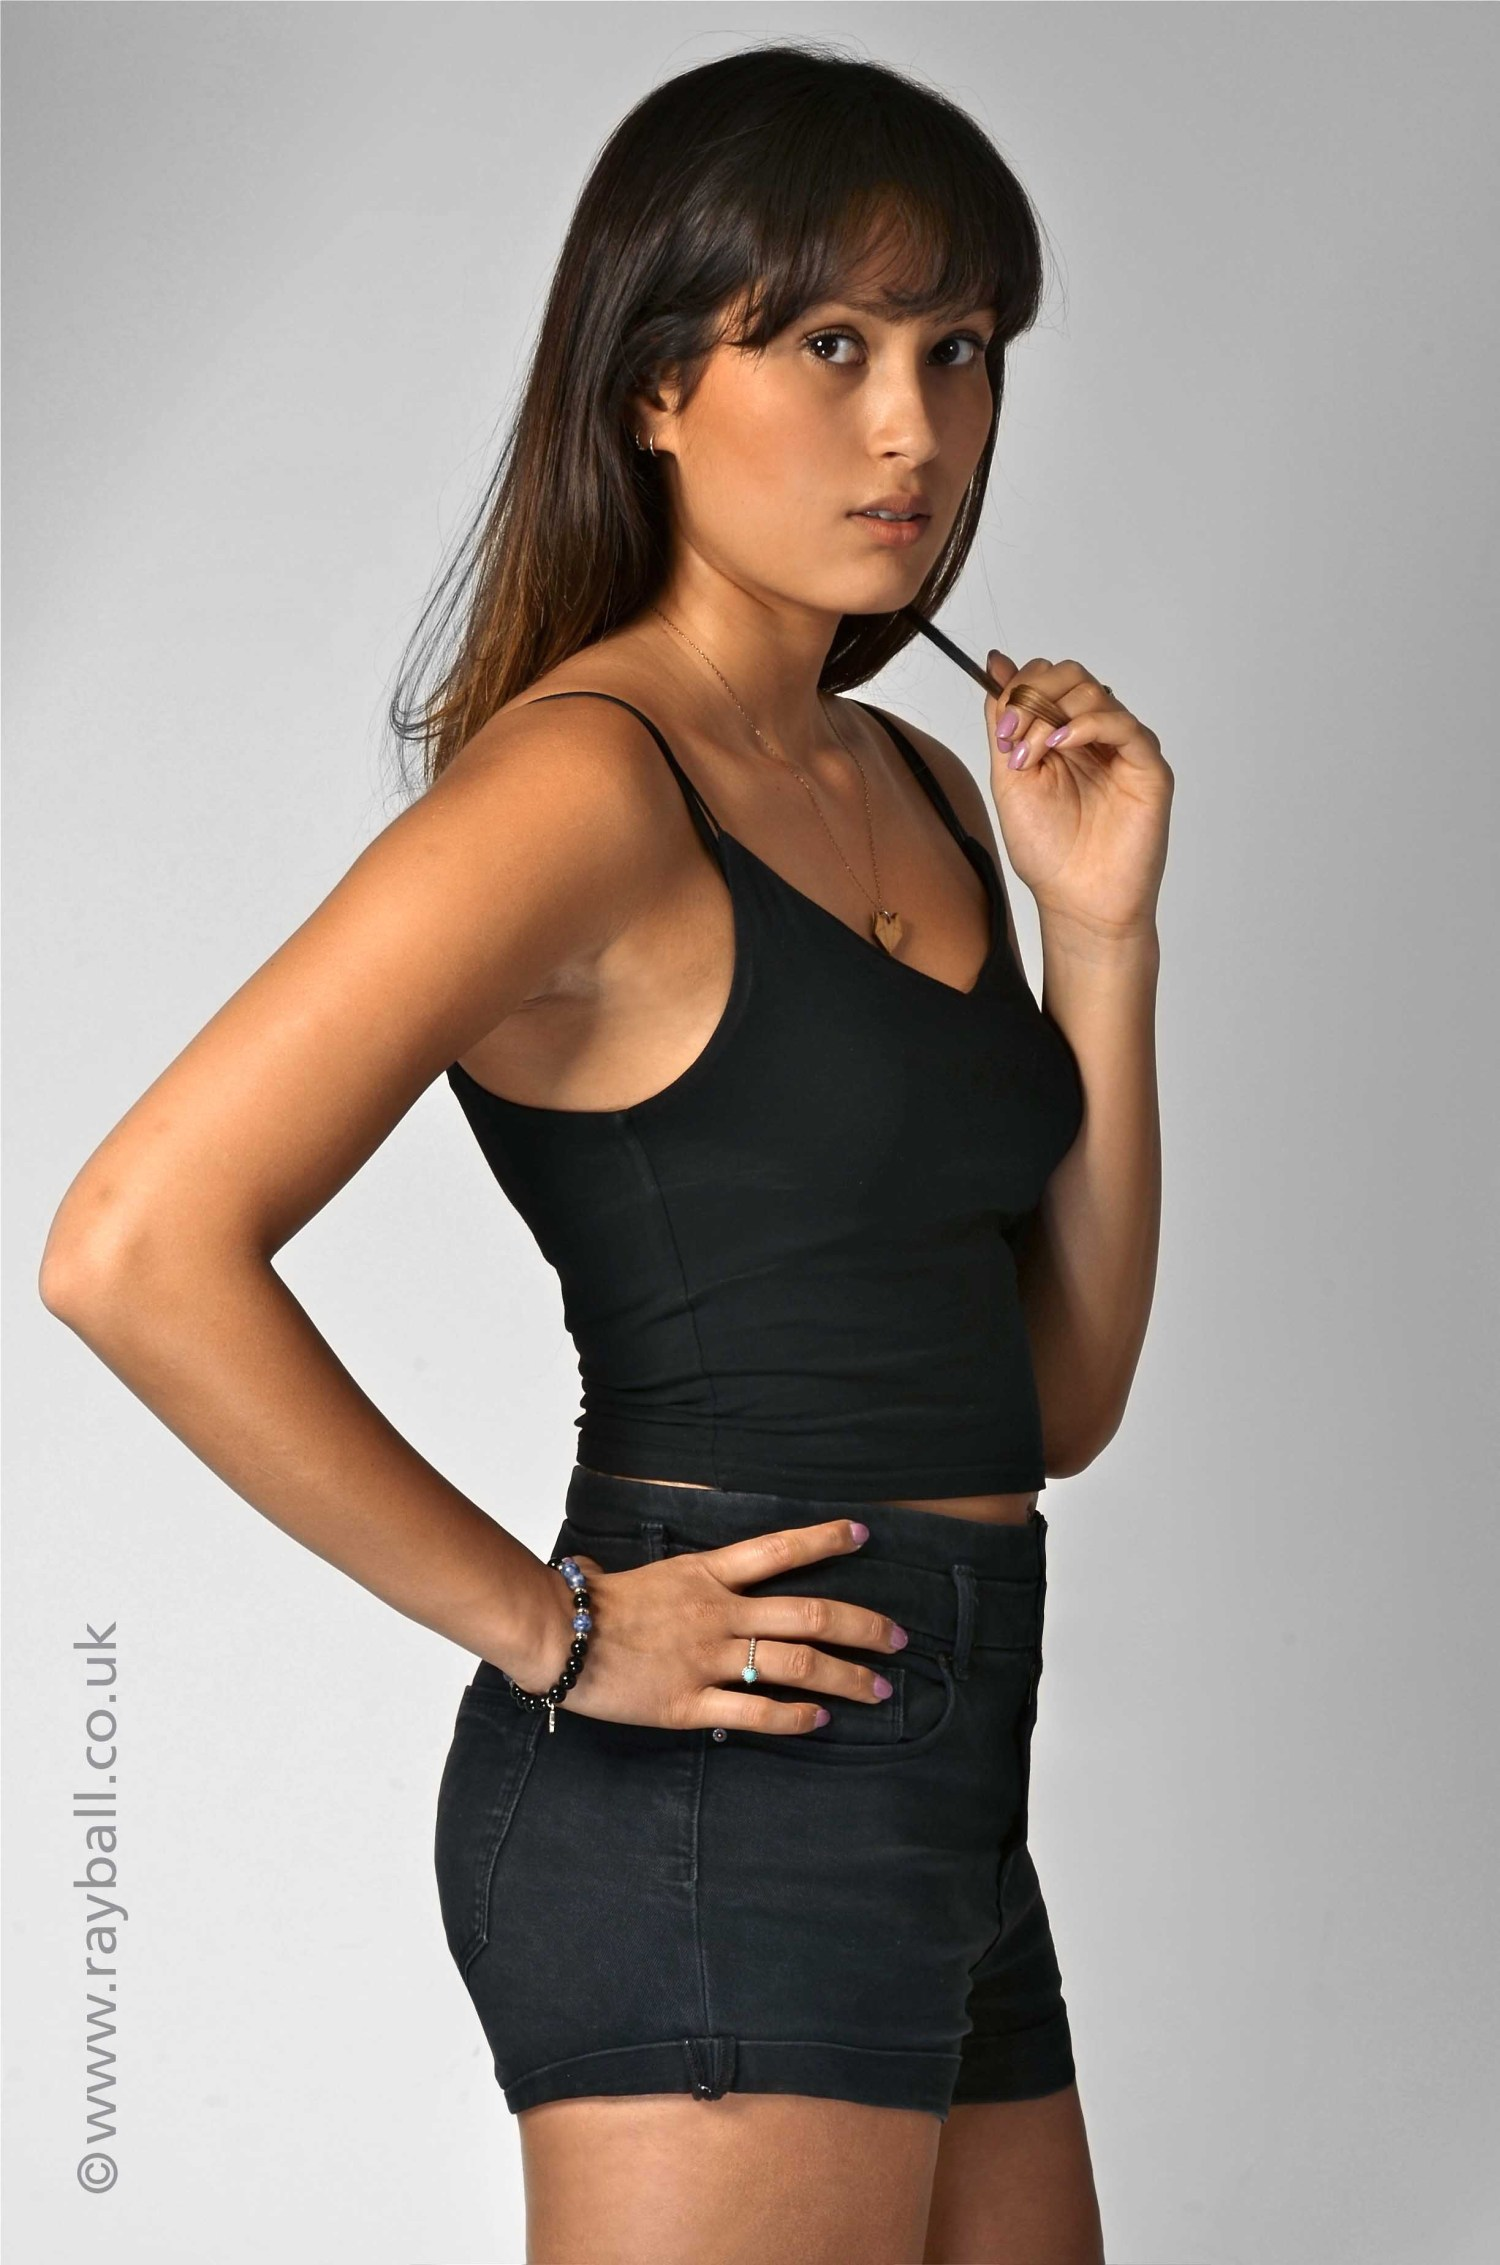 Surbiton model in black vest and shorts in Epsom studio.